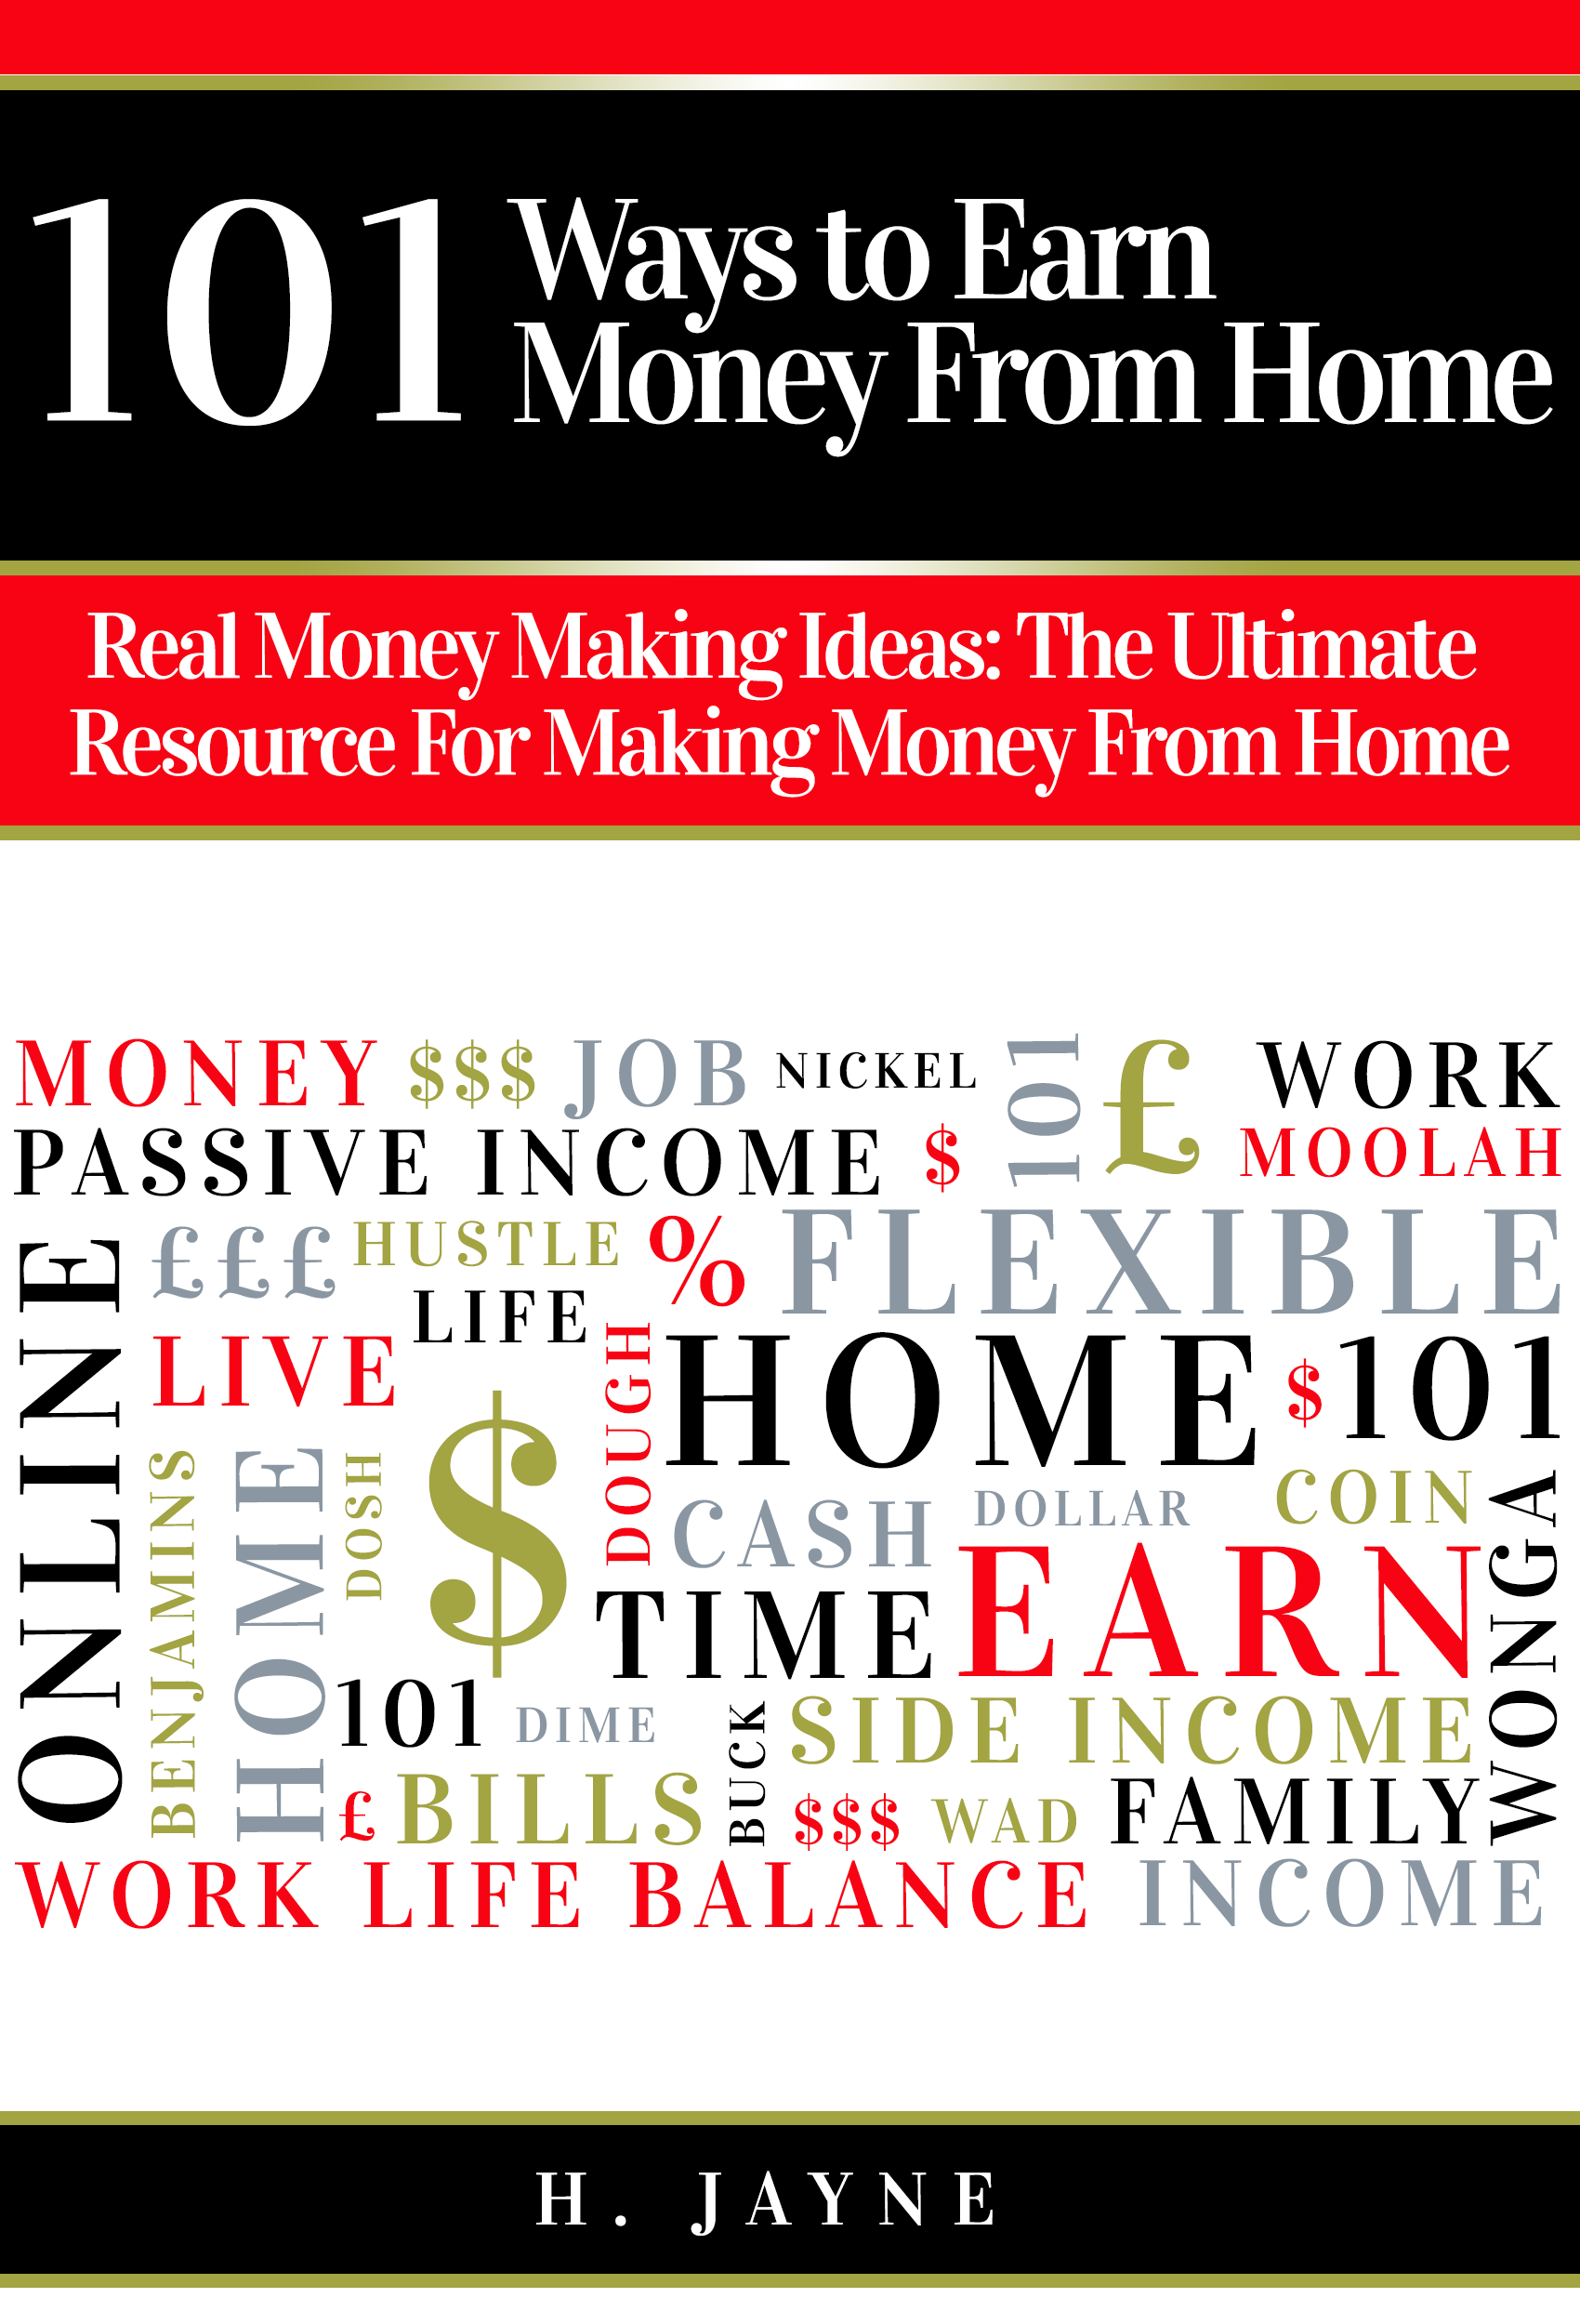 101 ways to earn money from home - new ebook launch!